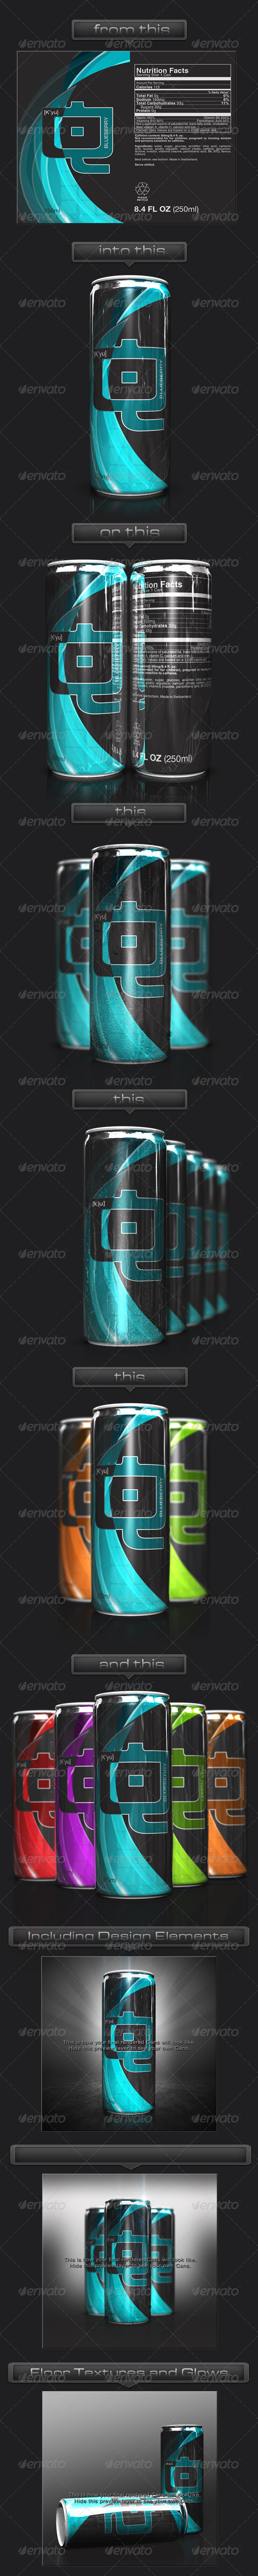 GraphicRiver 3D Energy Drink Soda Can Mockup 3526465